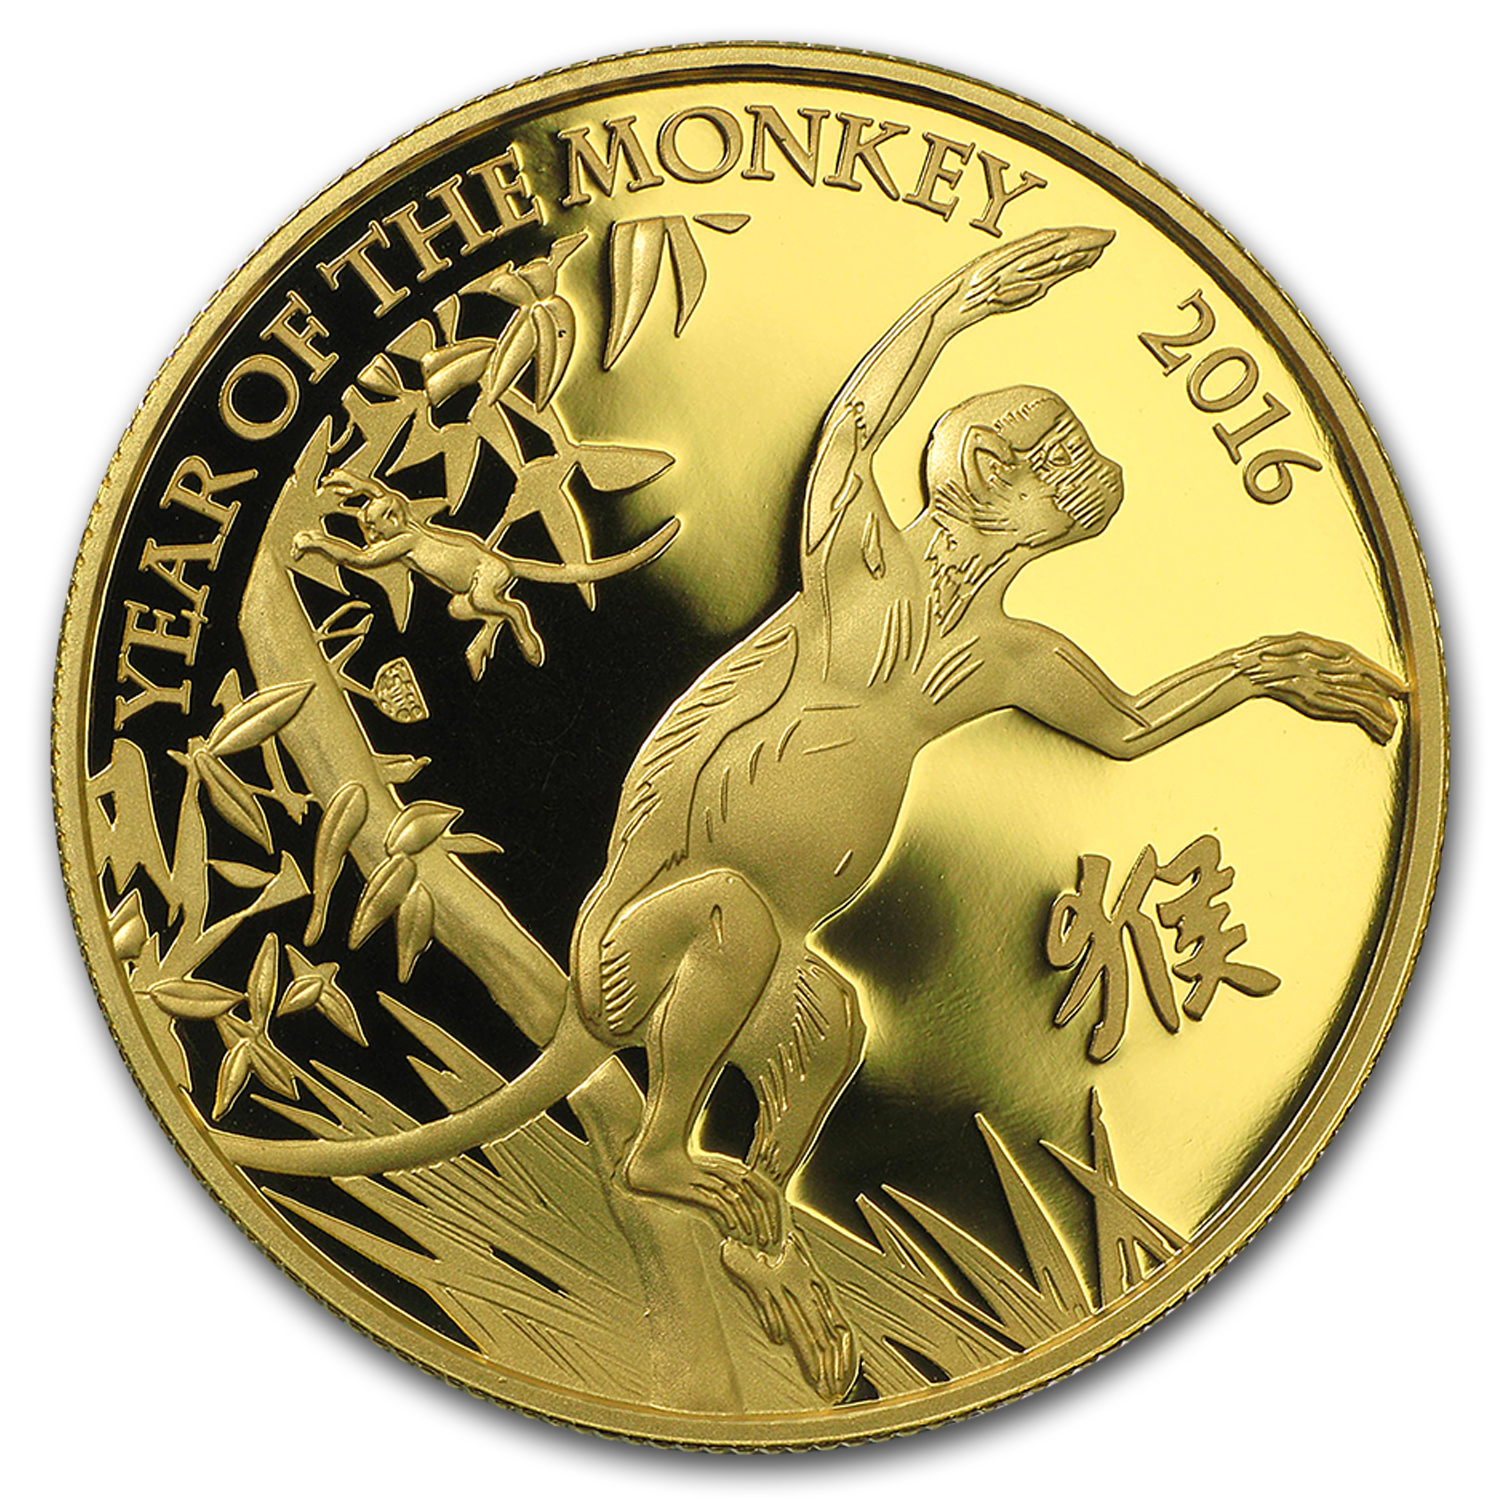 2016 GB 1 oz Gold Year of the Monkey Proof (First Release)